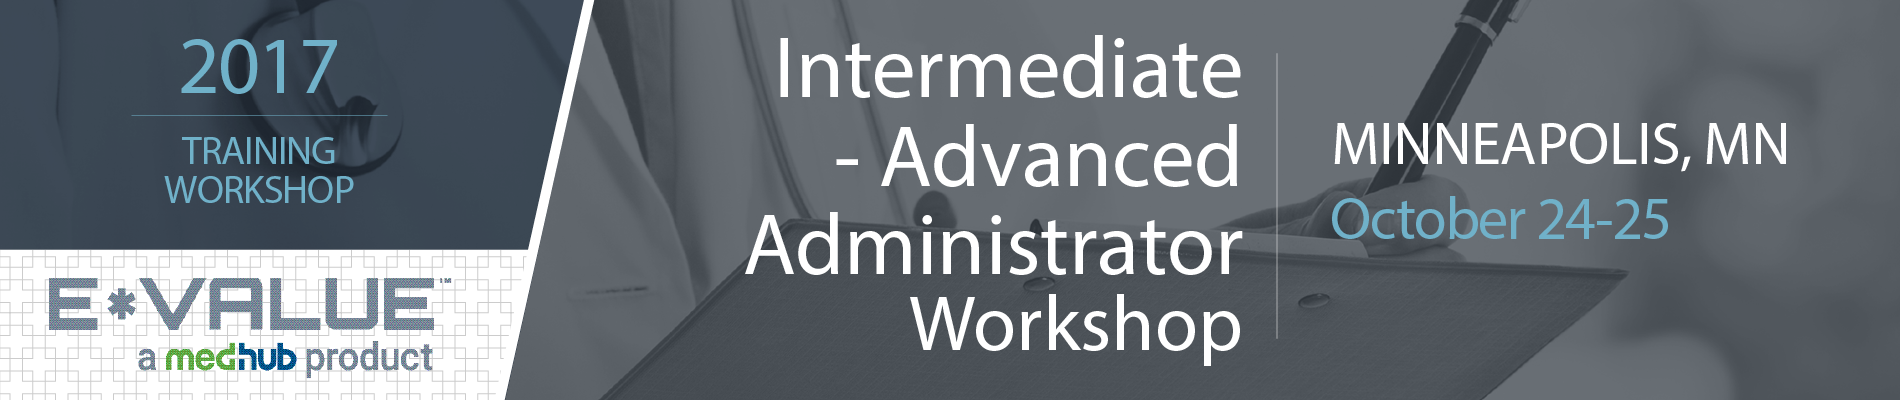 Intermediate/Advanced E*Value Administrator Workshop (October 24-25)